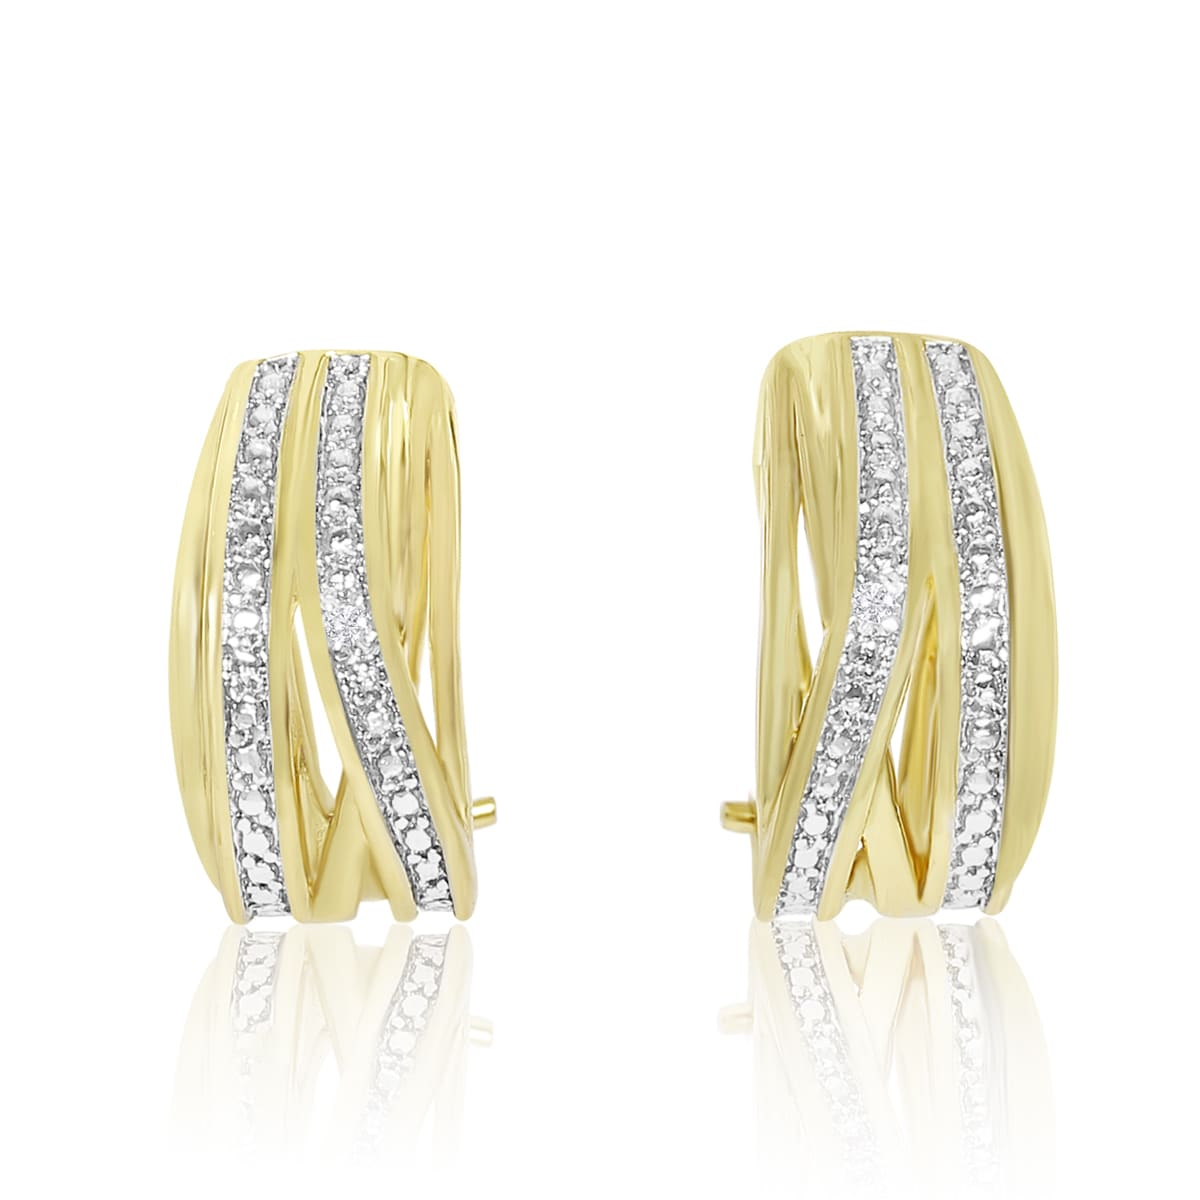 Elegant Diamond Half Hoop Earrings Yellow Gold Over Br 3 4 Inch Free Shipping On Orders 45 15957972